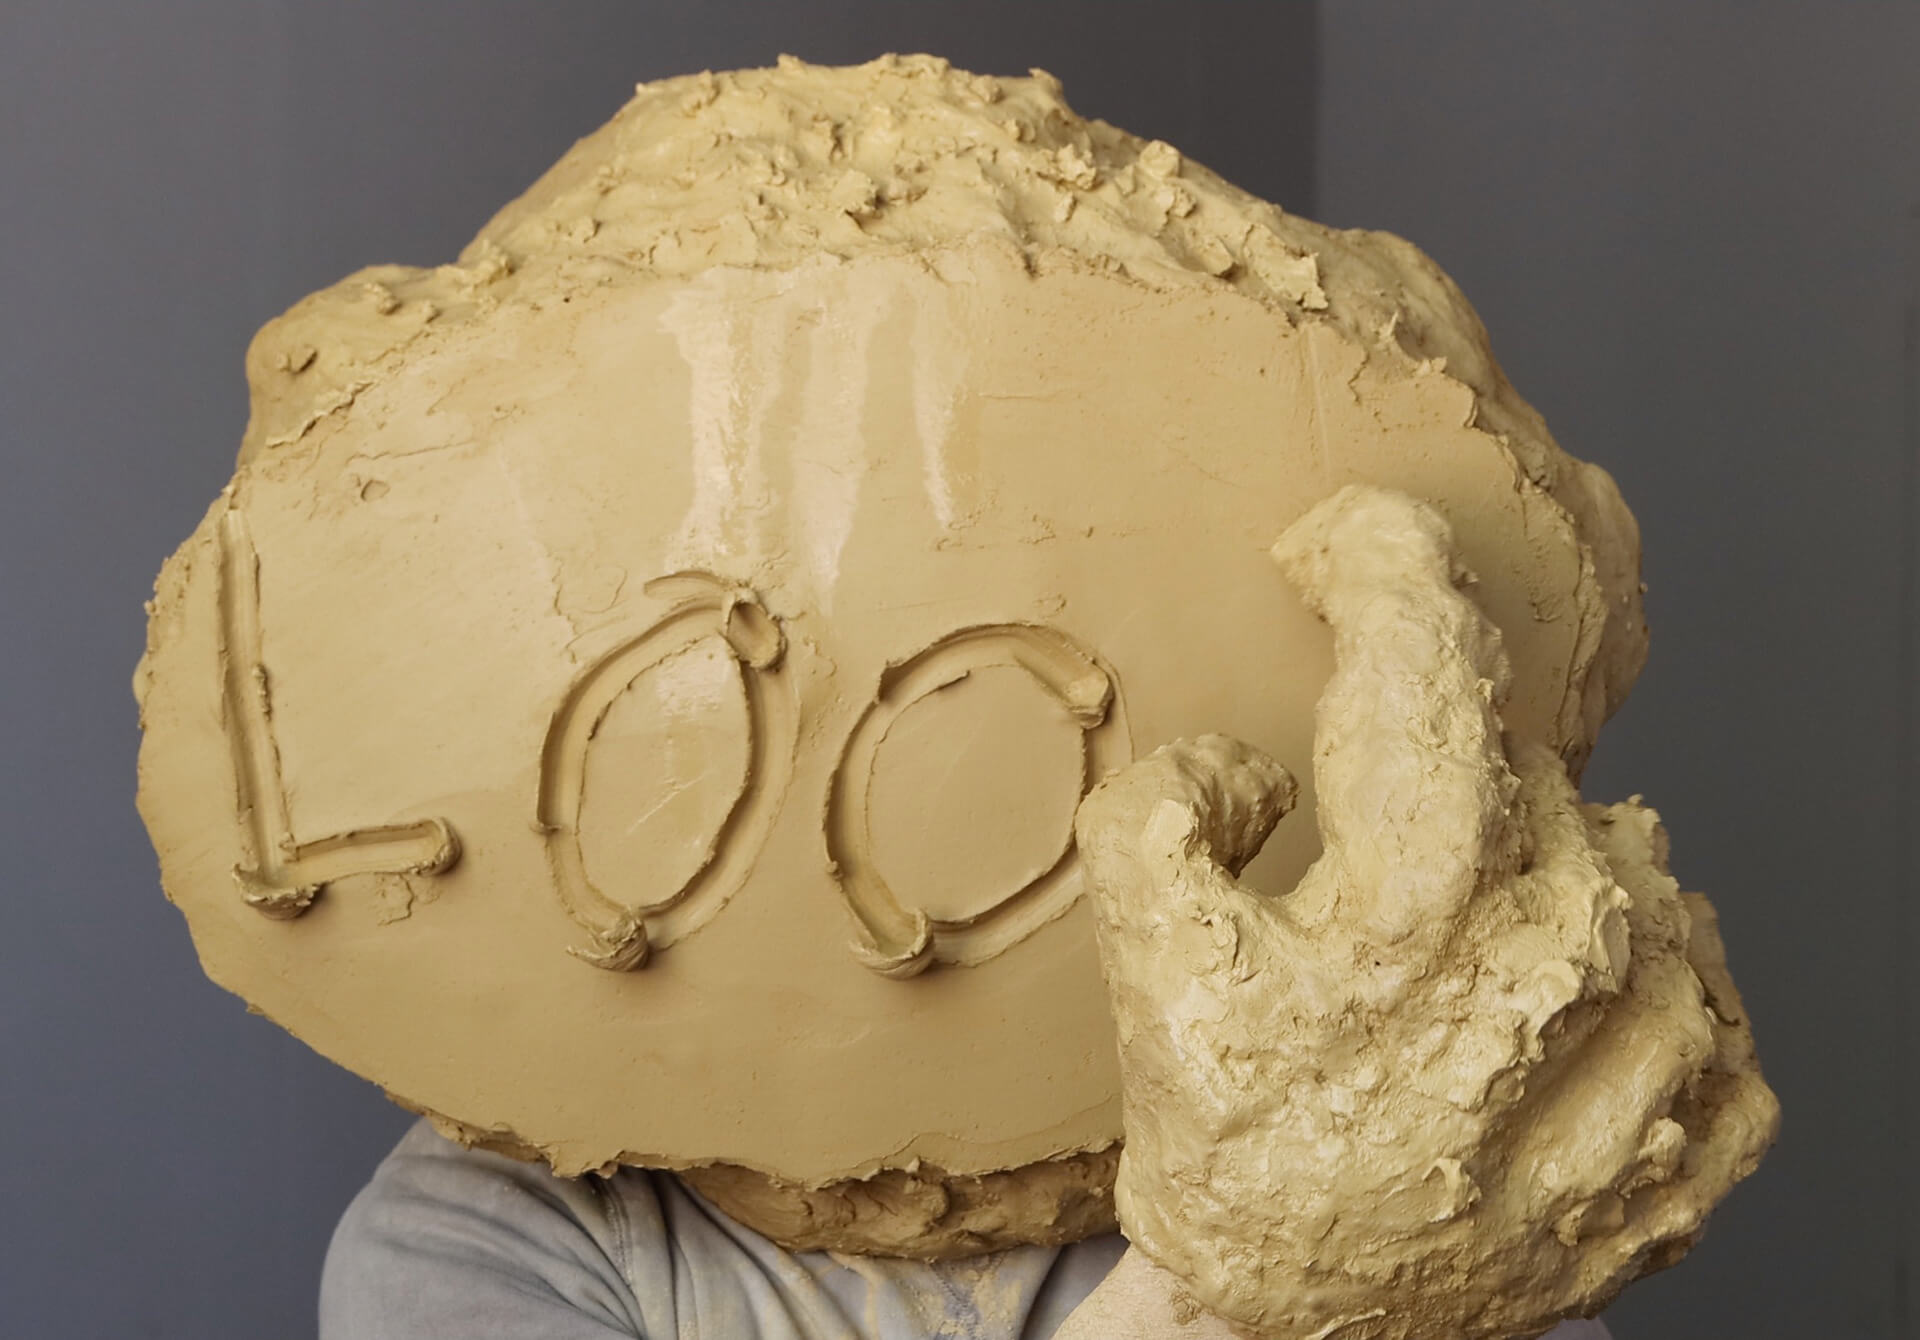 Artist William Cobbing performing inside a clay head| STIRworld